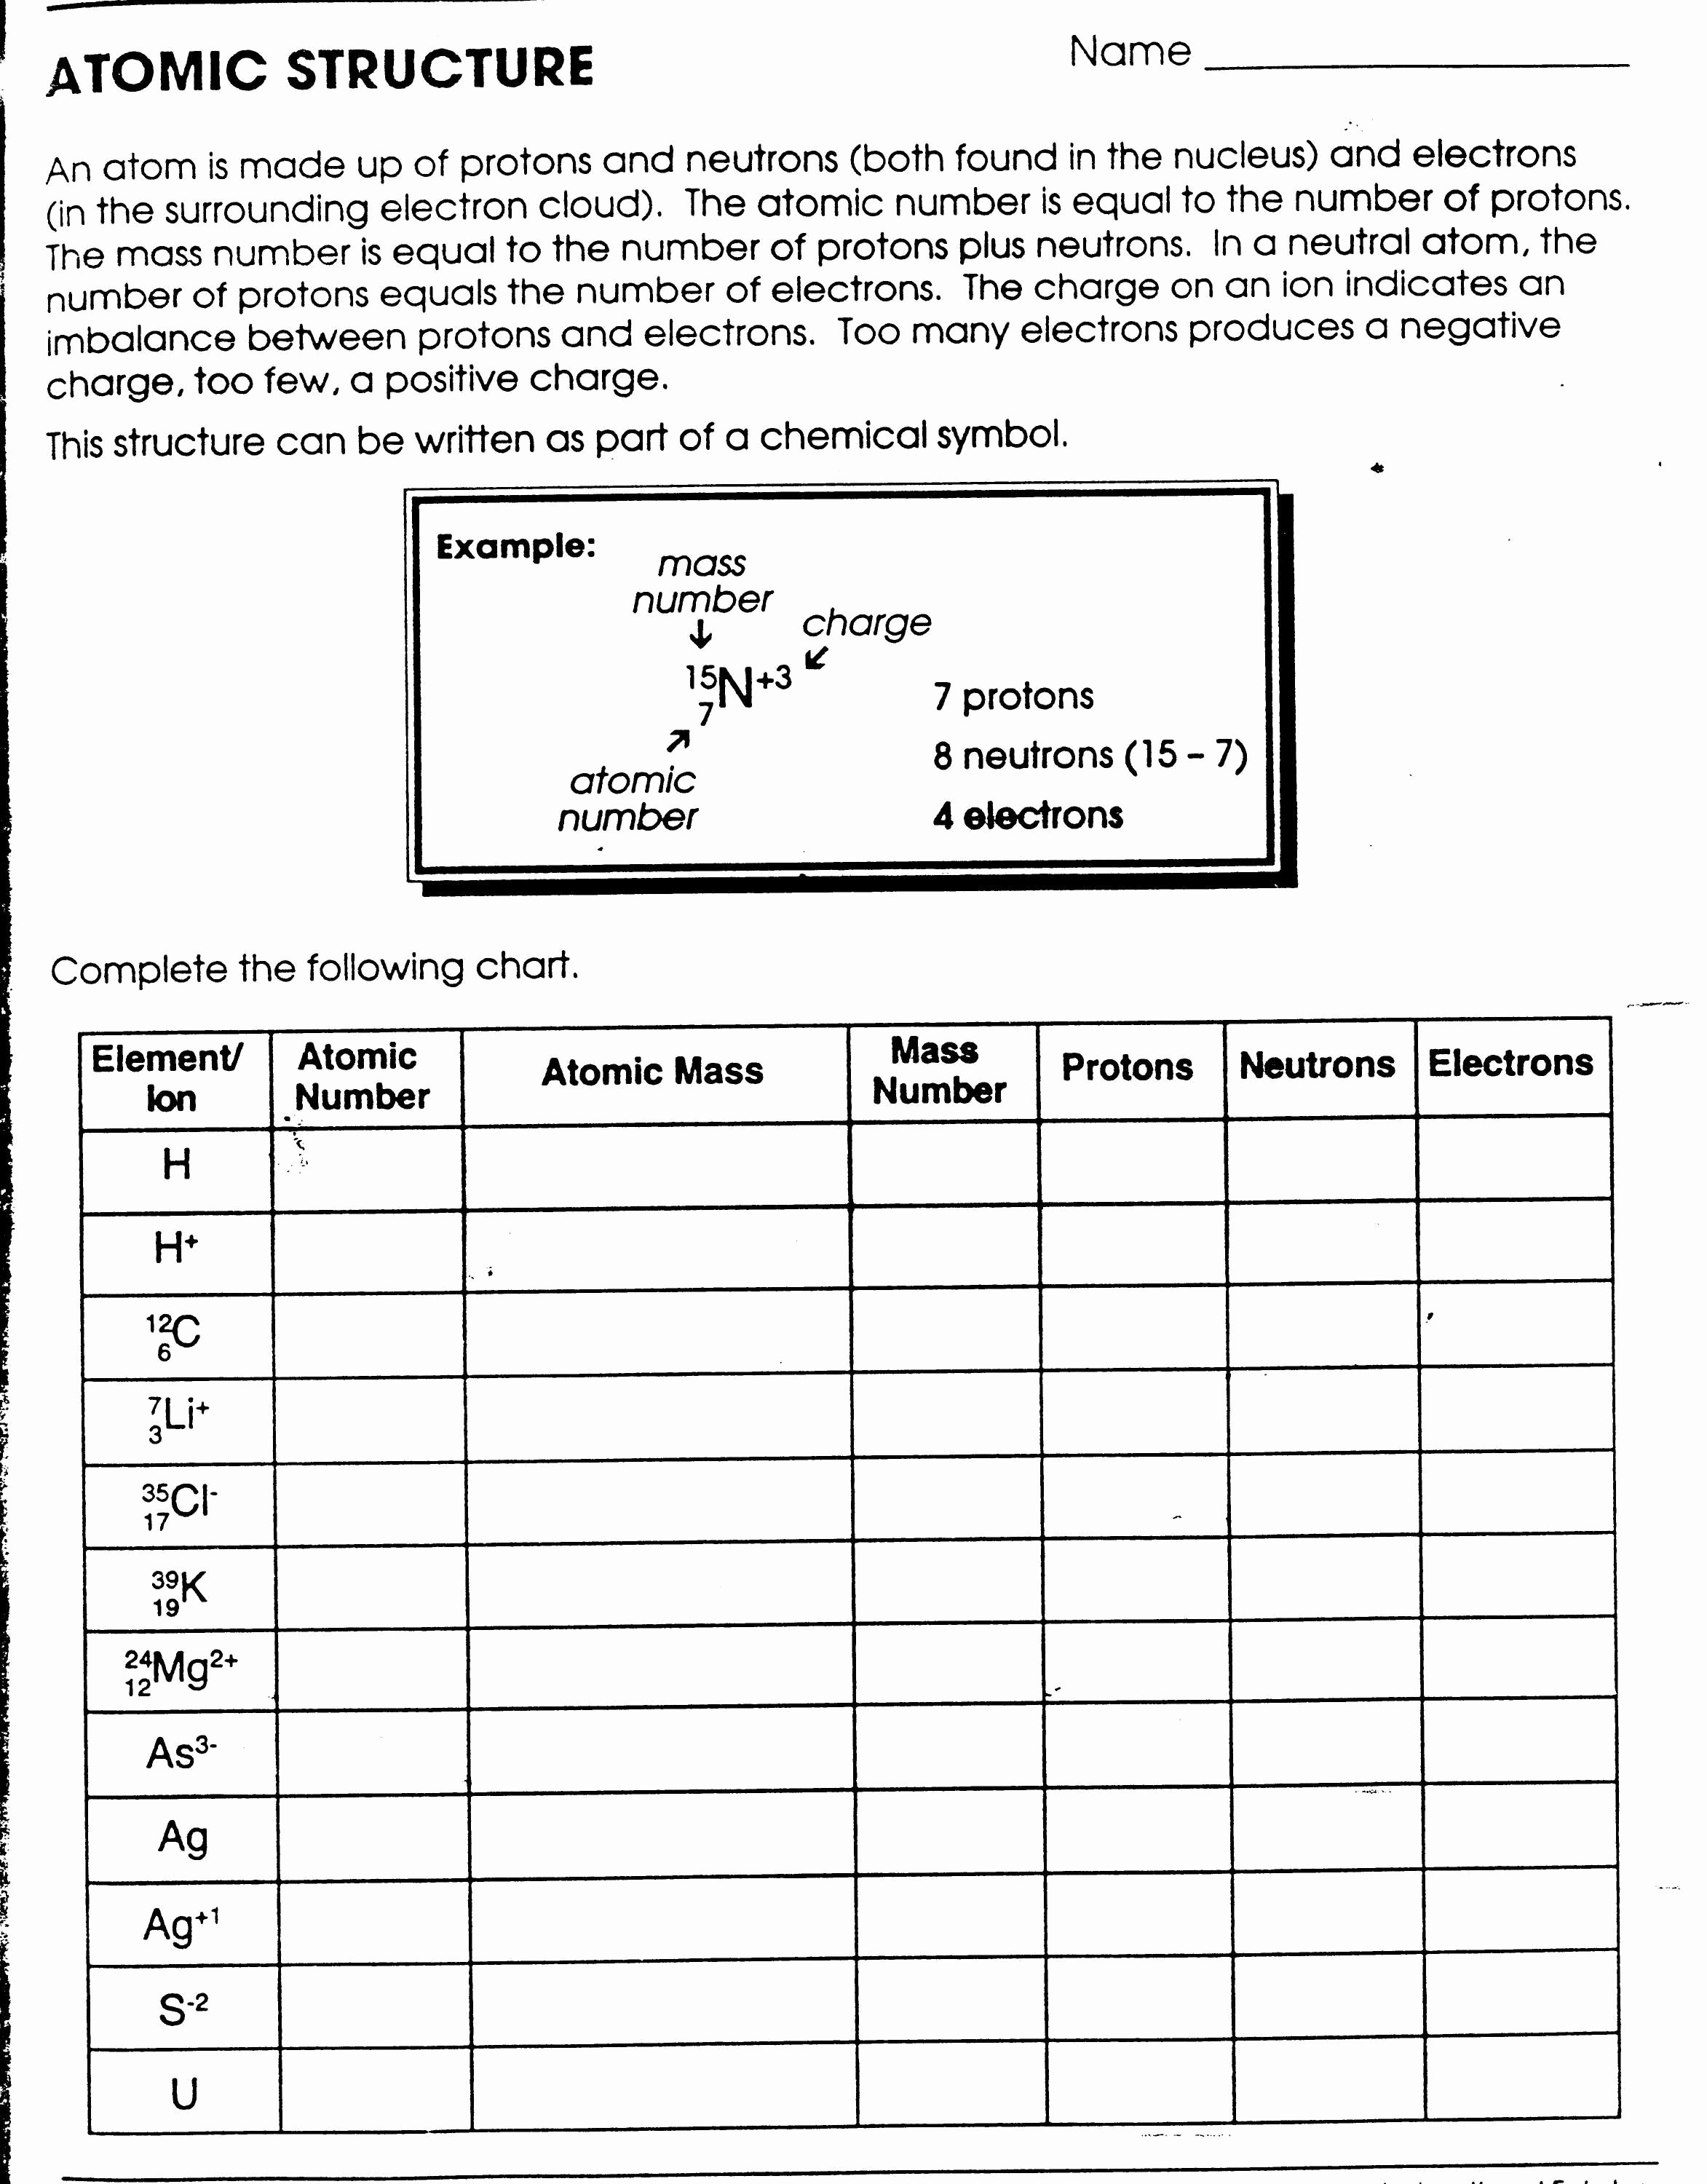 Atomic Structure Worksheet Answers Chemistry Elegant Skills Worksheet Concept Review Section the Development